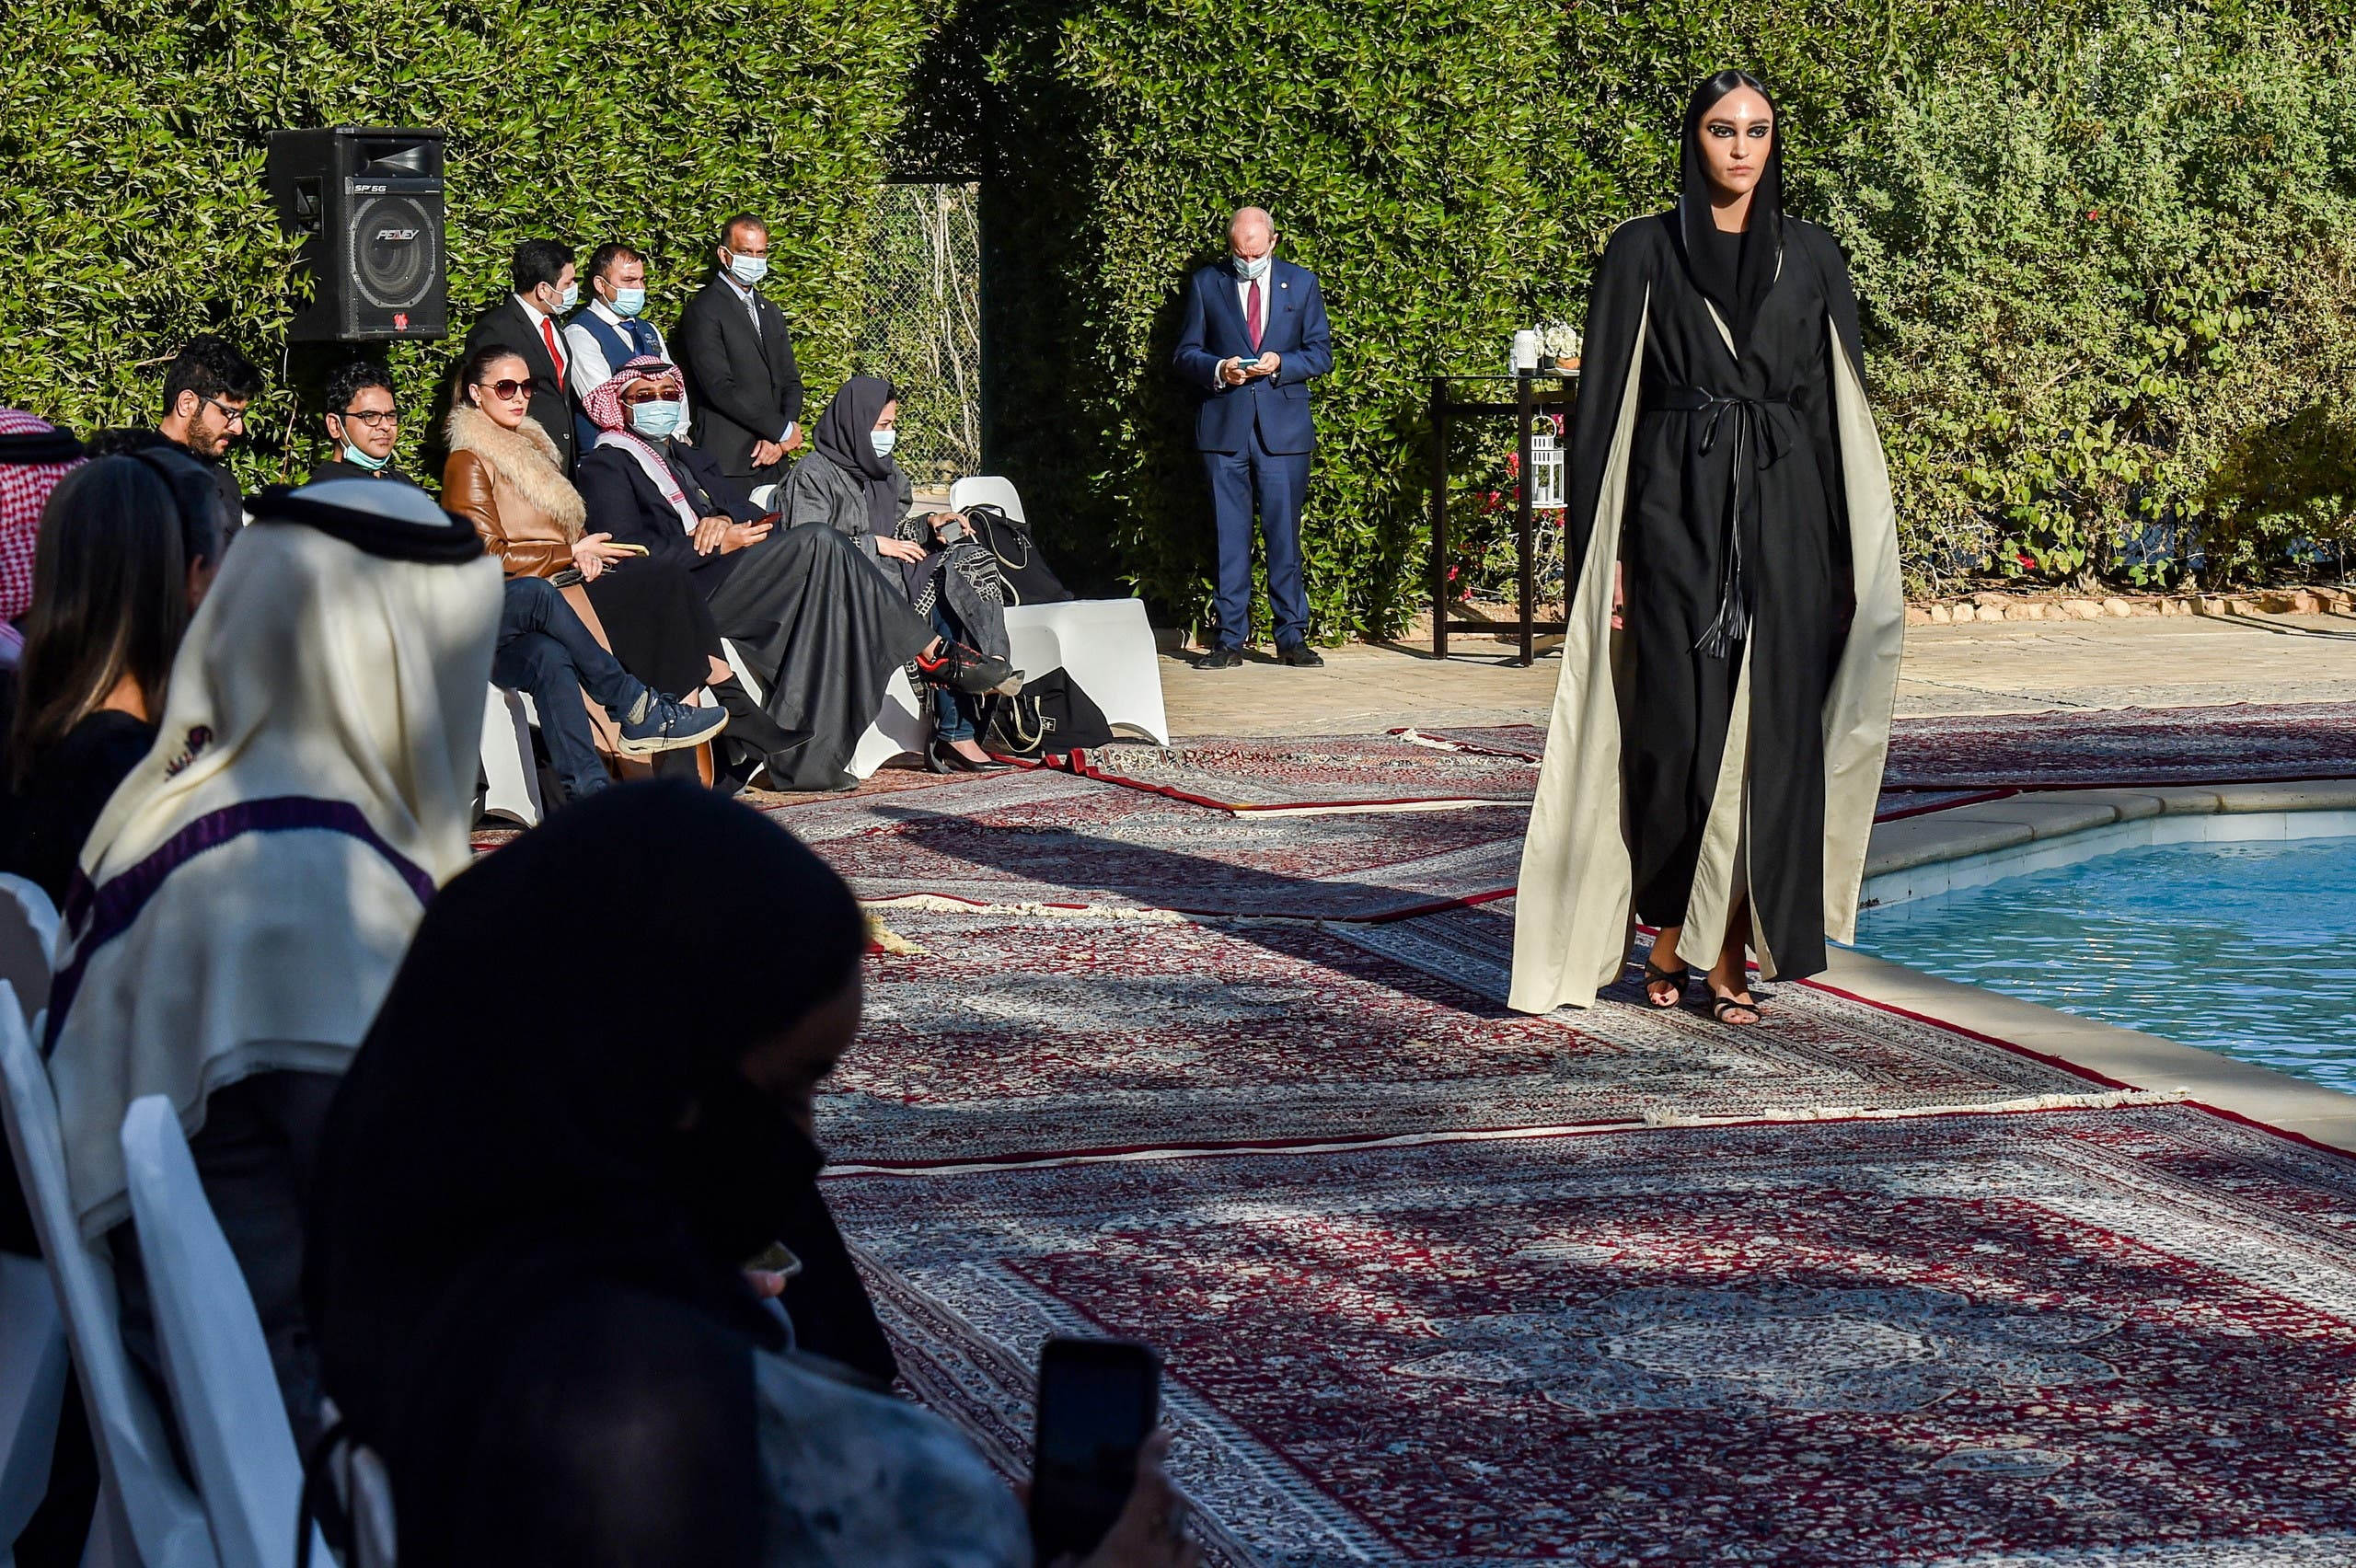 A model walks during the presentation of the Khaleeki Chic (Stay stylish) collection by Saudi and Belgian designers Safia Hussein and Christophe Beaufays, at the Belgian residence in Saudi Arabia's capital Riyadh's diplomatic quarter, on January 23, 2021. (File photo: AFP)